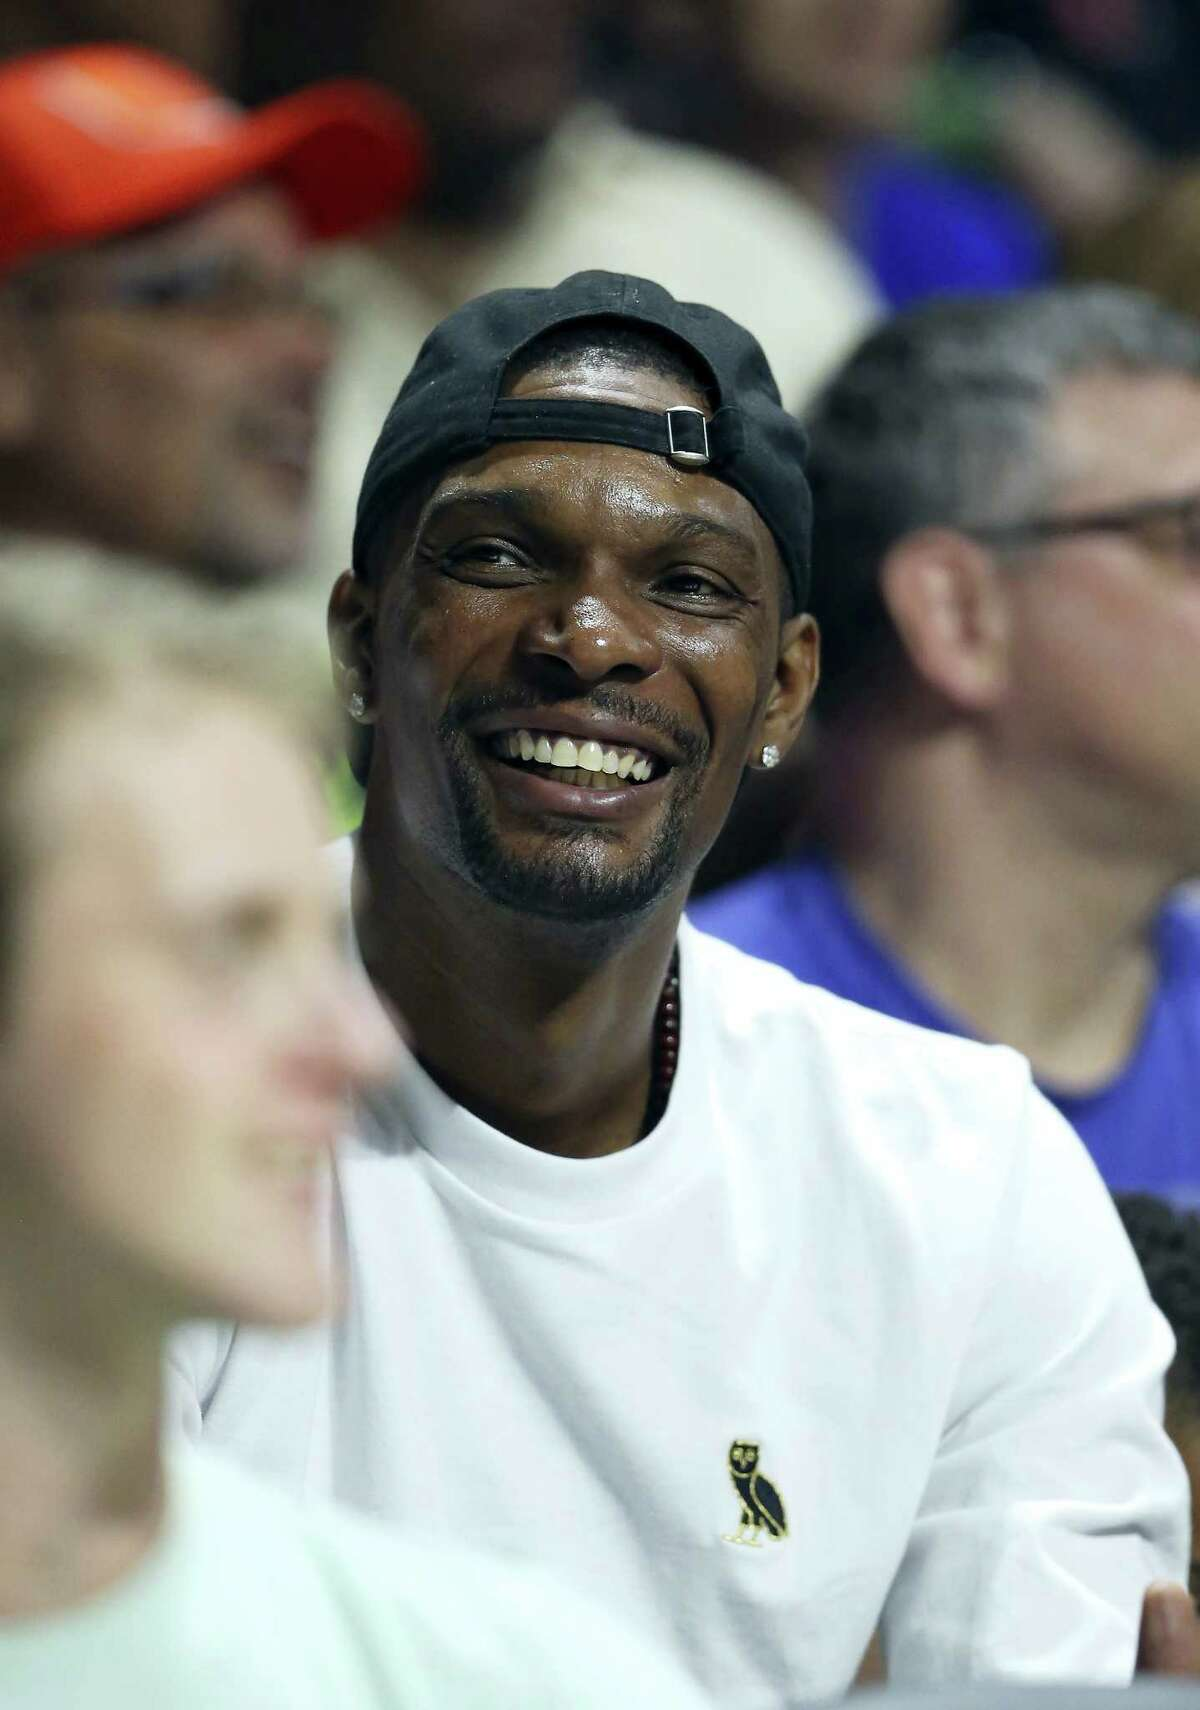 Miami Heat forward Chris Bosh smiles during the first half of an NCAA college basketball game between Miami and Duke in Coral Gables, Fla., on Feb. 25, 2017.